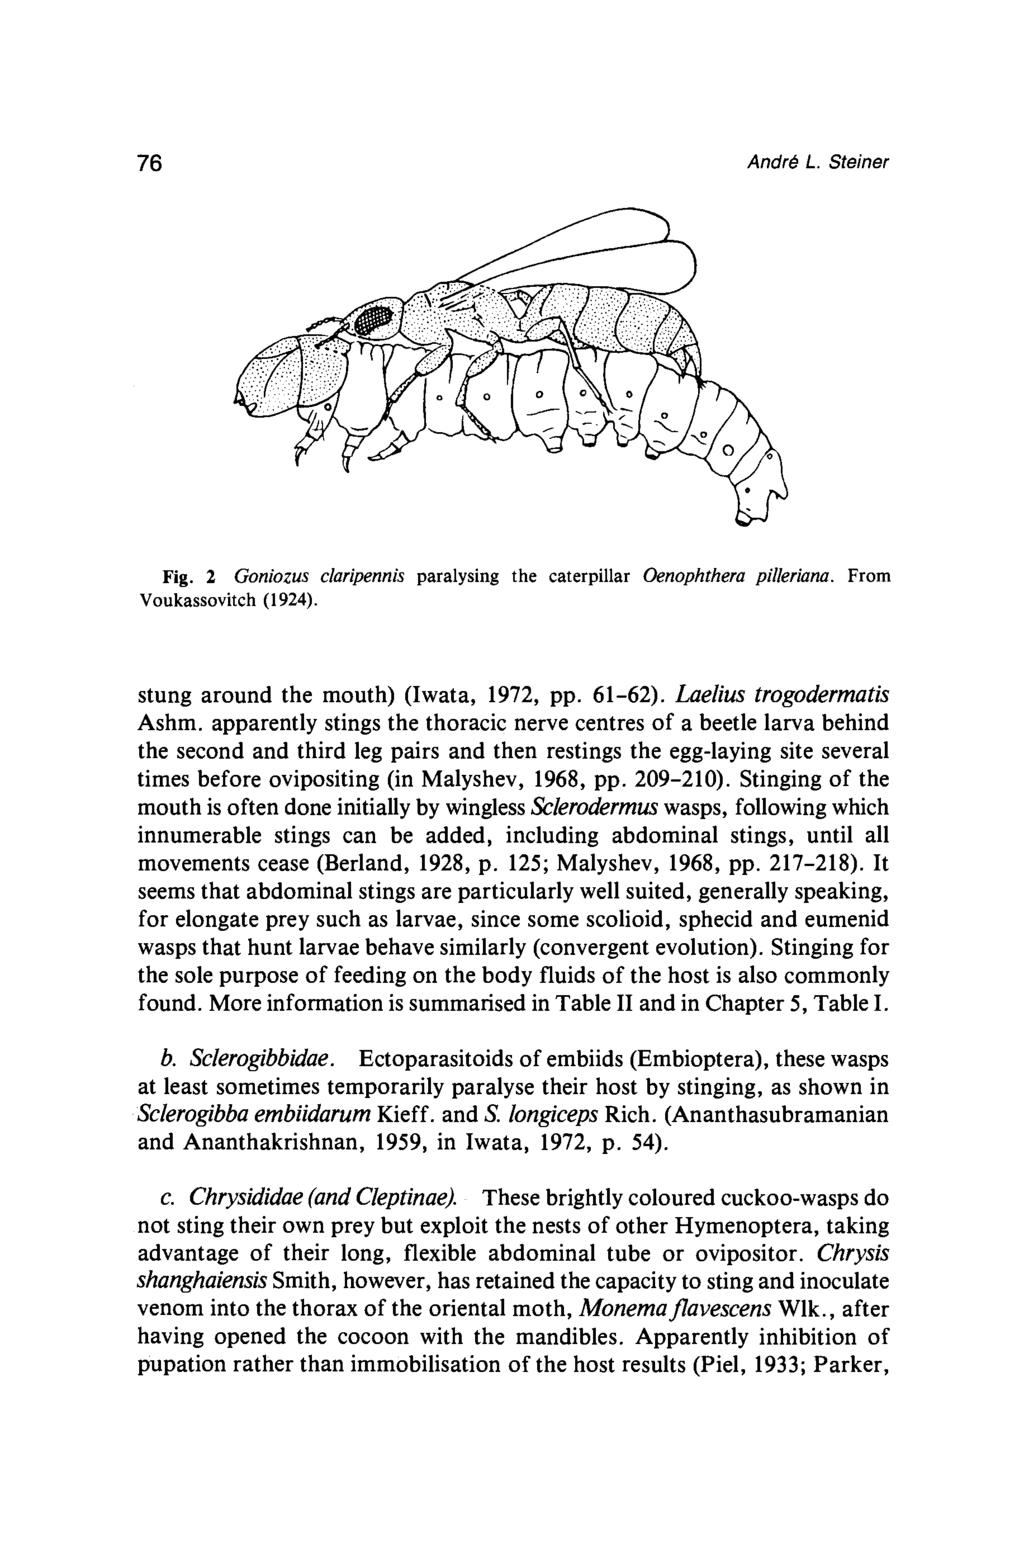 76 Andro L. Steiner Fig. 2 Goniozus claripennis paralysing the caterpillar Oenophthera pilleriana. From Voukassovitch (1924). stung around the mouth) (Iwata, 1972, pp. 61-62).